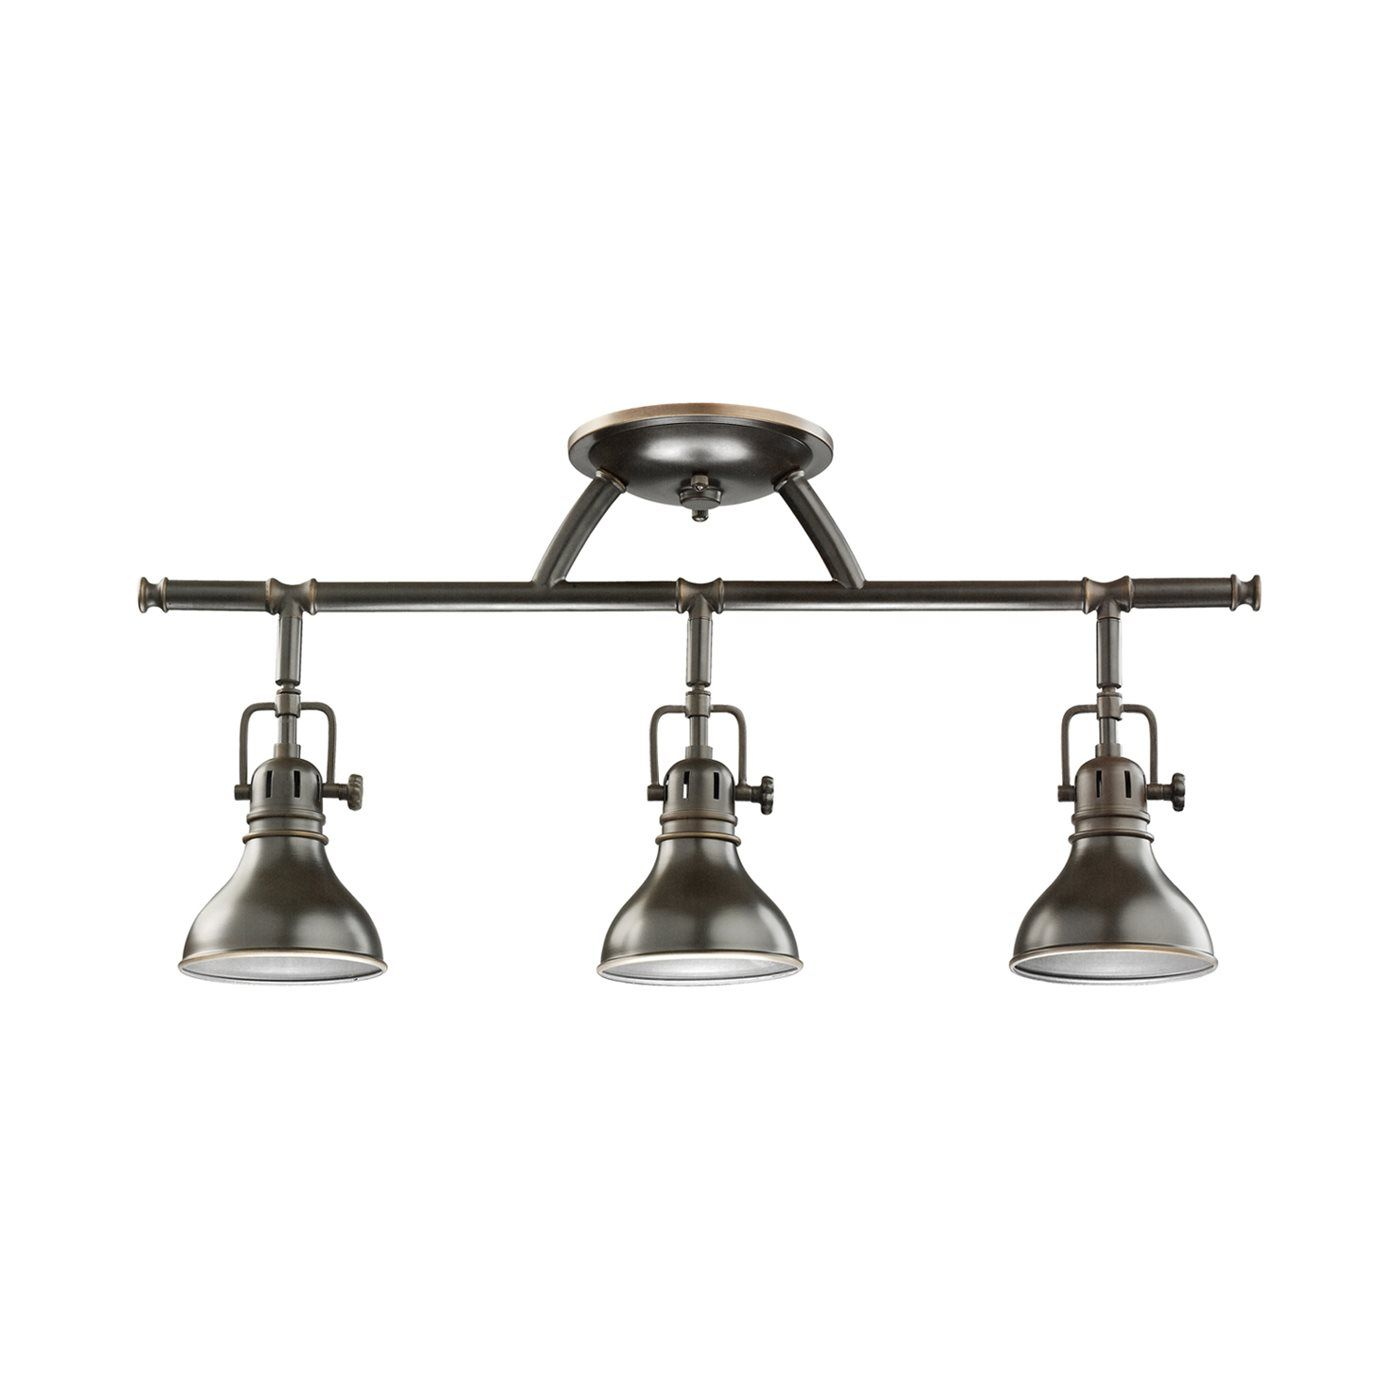 track lighting kits light atg stores. perfect stores track lighting kits light atg stores kichler 7050 hatteras bay 3  rail directional throughout track lighting kits light atg stores